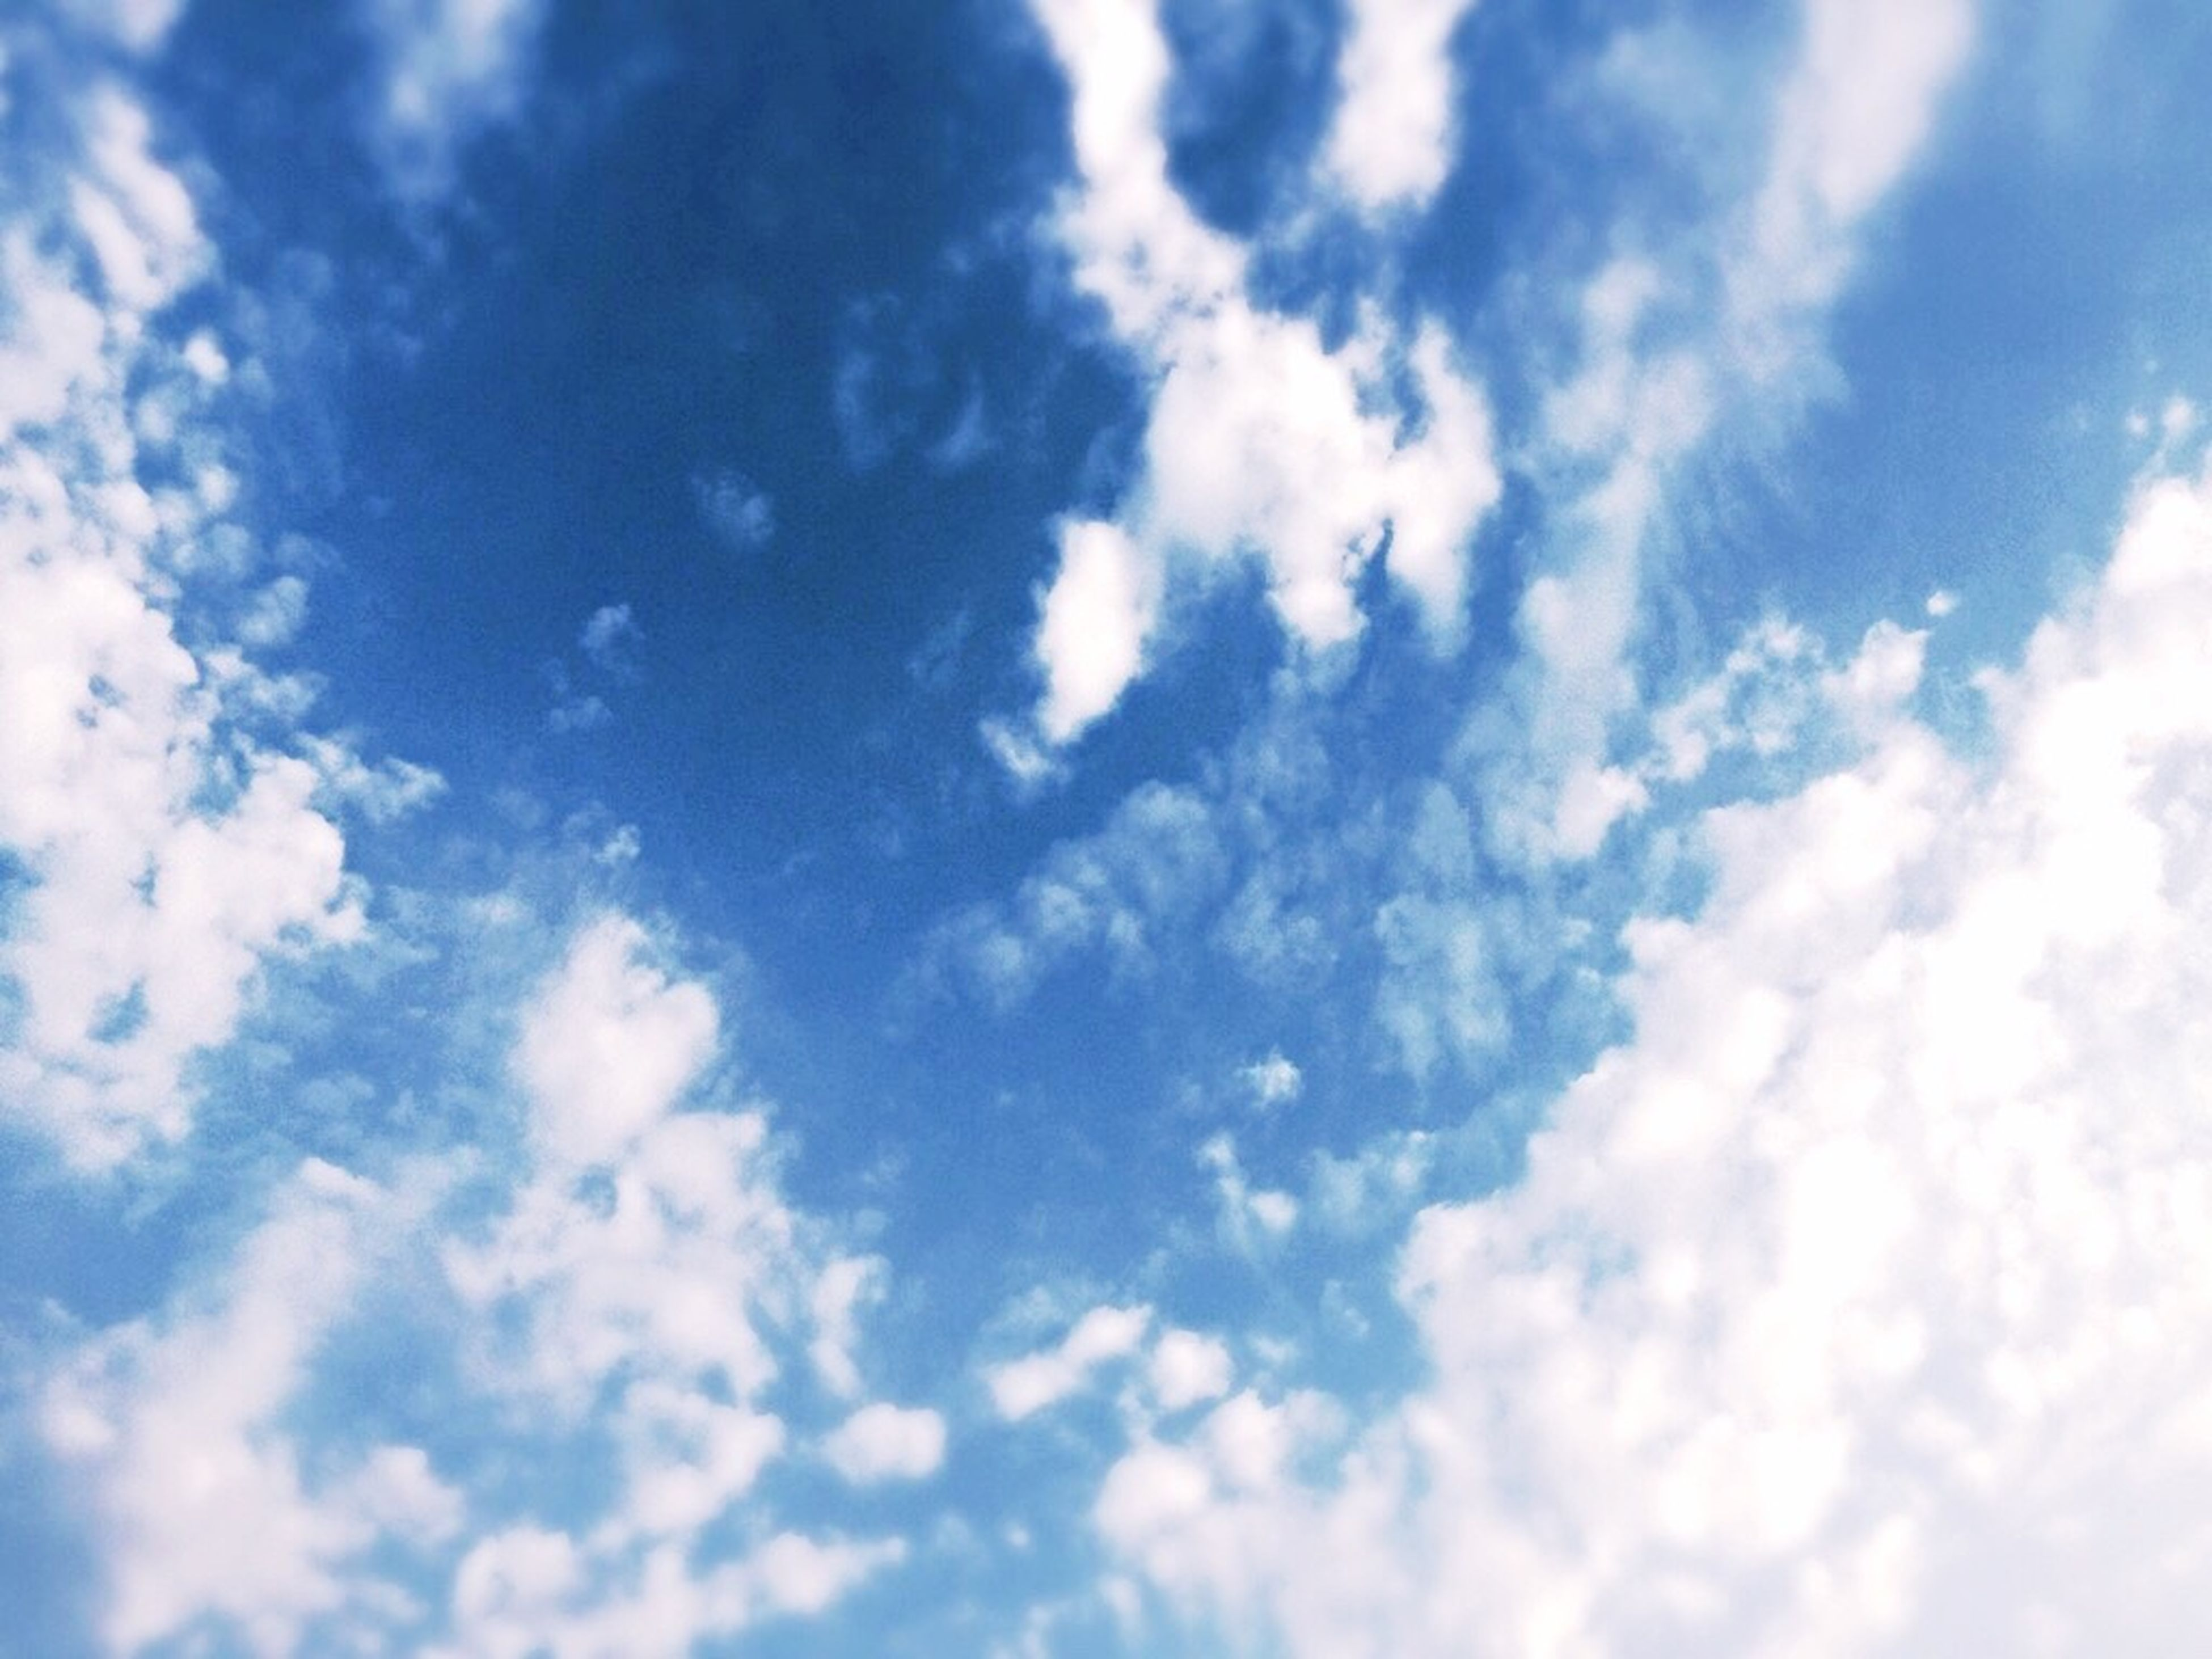 beauty in nature, low angle view, tranquility, scenics, sky, blue, tranquil scene, majestic, cloud - sky, nature, backgrounds, white, cloud, cloudscape, day, full frame, sky only, idyllic, heaven, meteorology, outdoors, fluffy, softness, ethereal, dreamlike, cloudy, no people, cumulus cloud